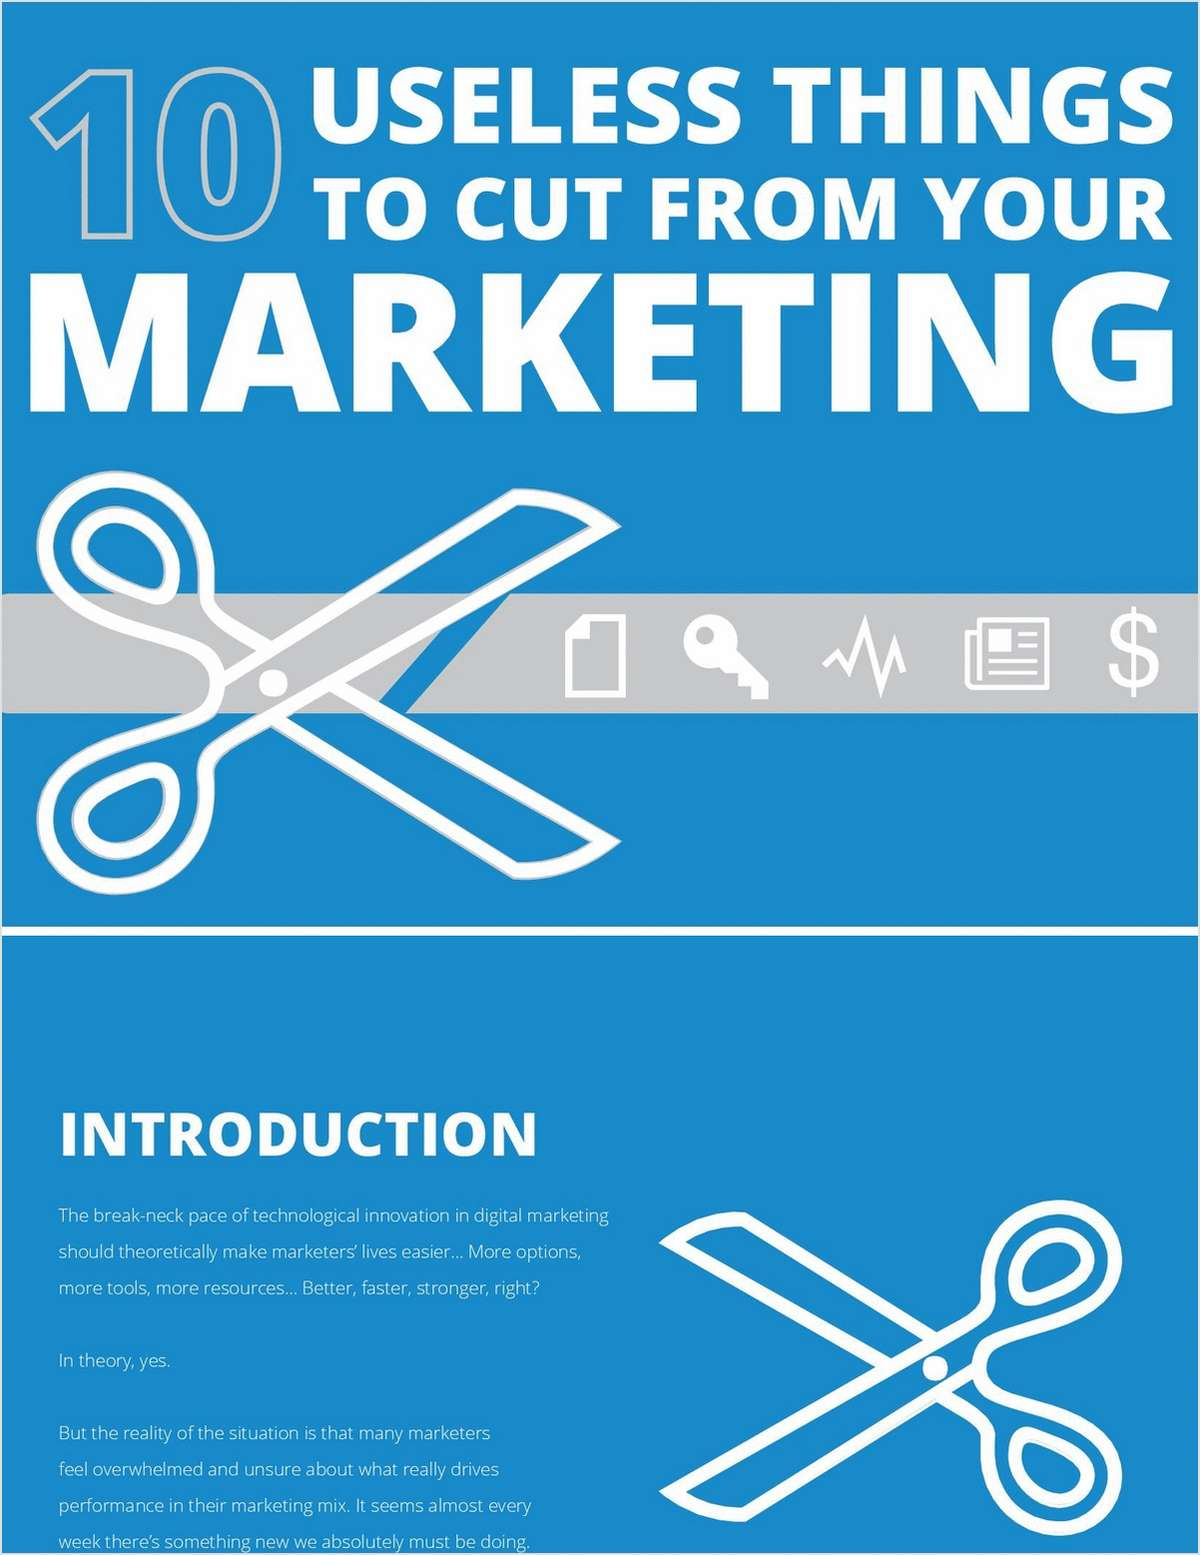 10 Useless Things To Cut From Your Digital Marketing Budget in 2017